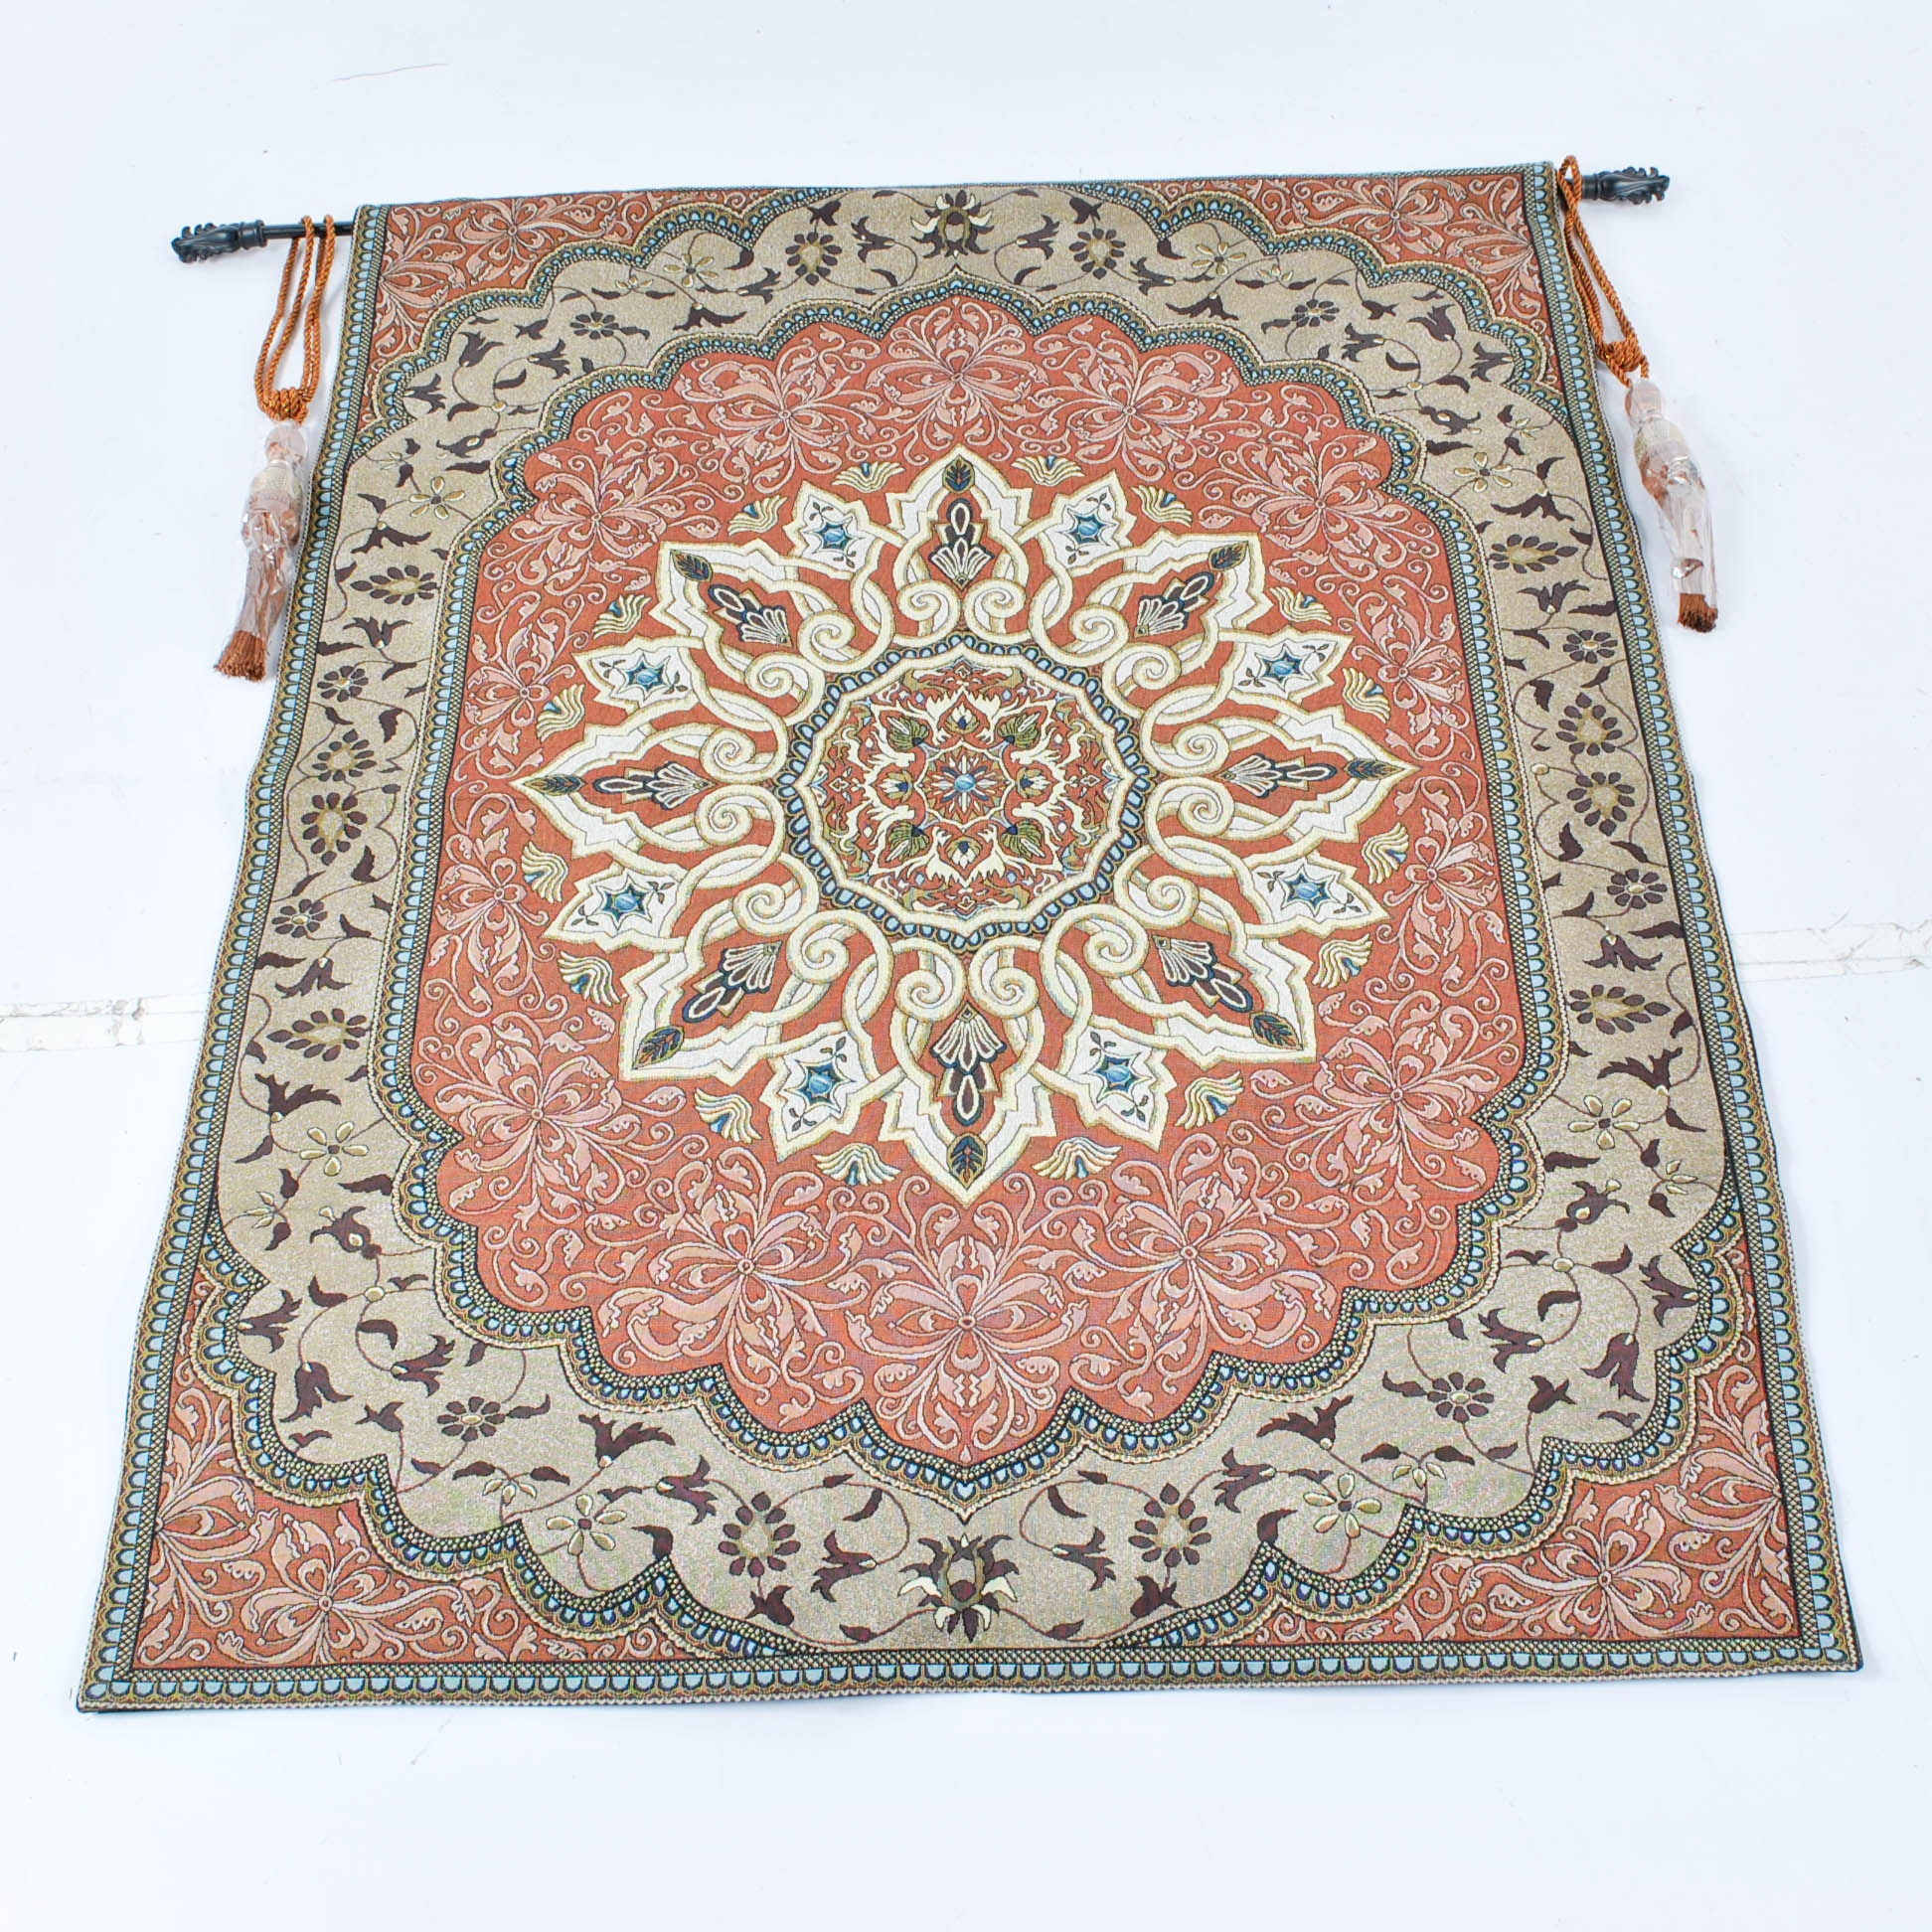 Machine Woven Persian Inspired Tapestry with Rod and Decorative Tassels